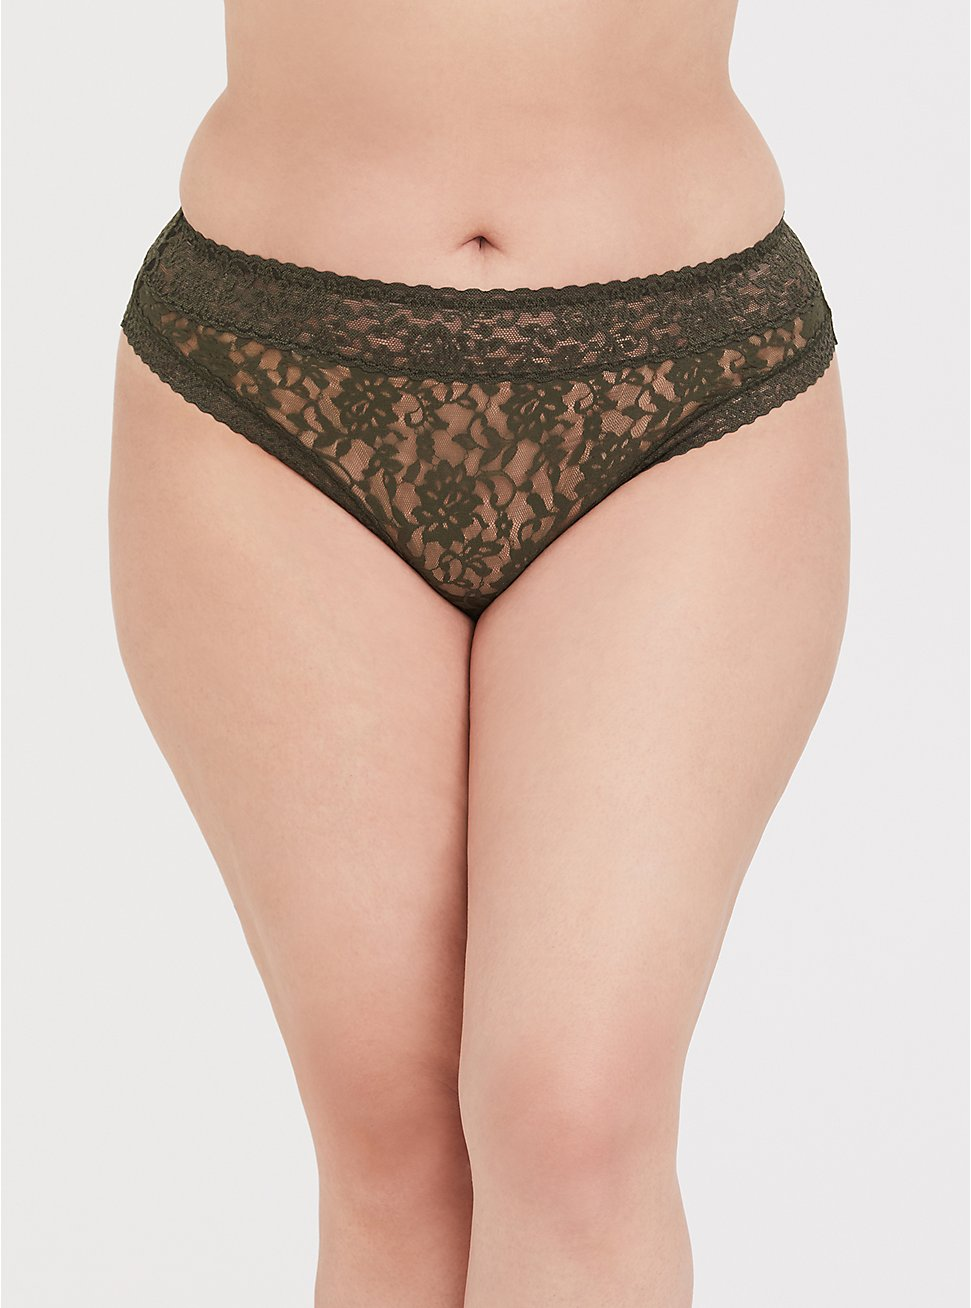 Plus Size Olive Green Lacey Thong Panty, DEEP DEPTHS, hi-res